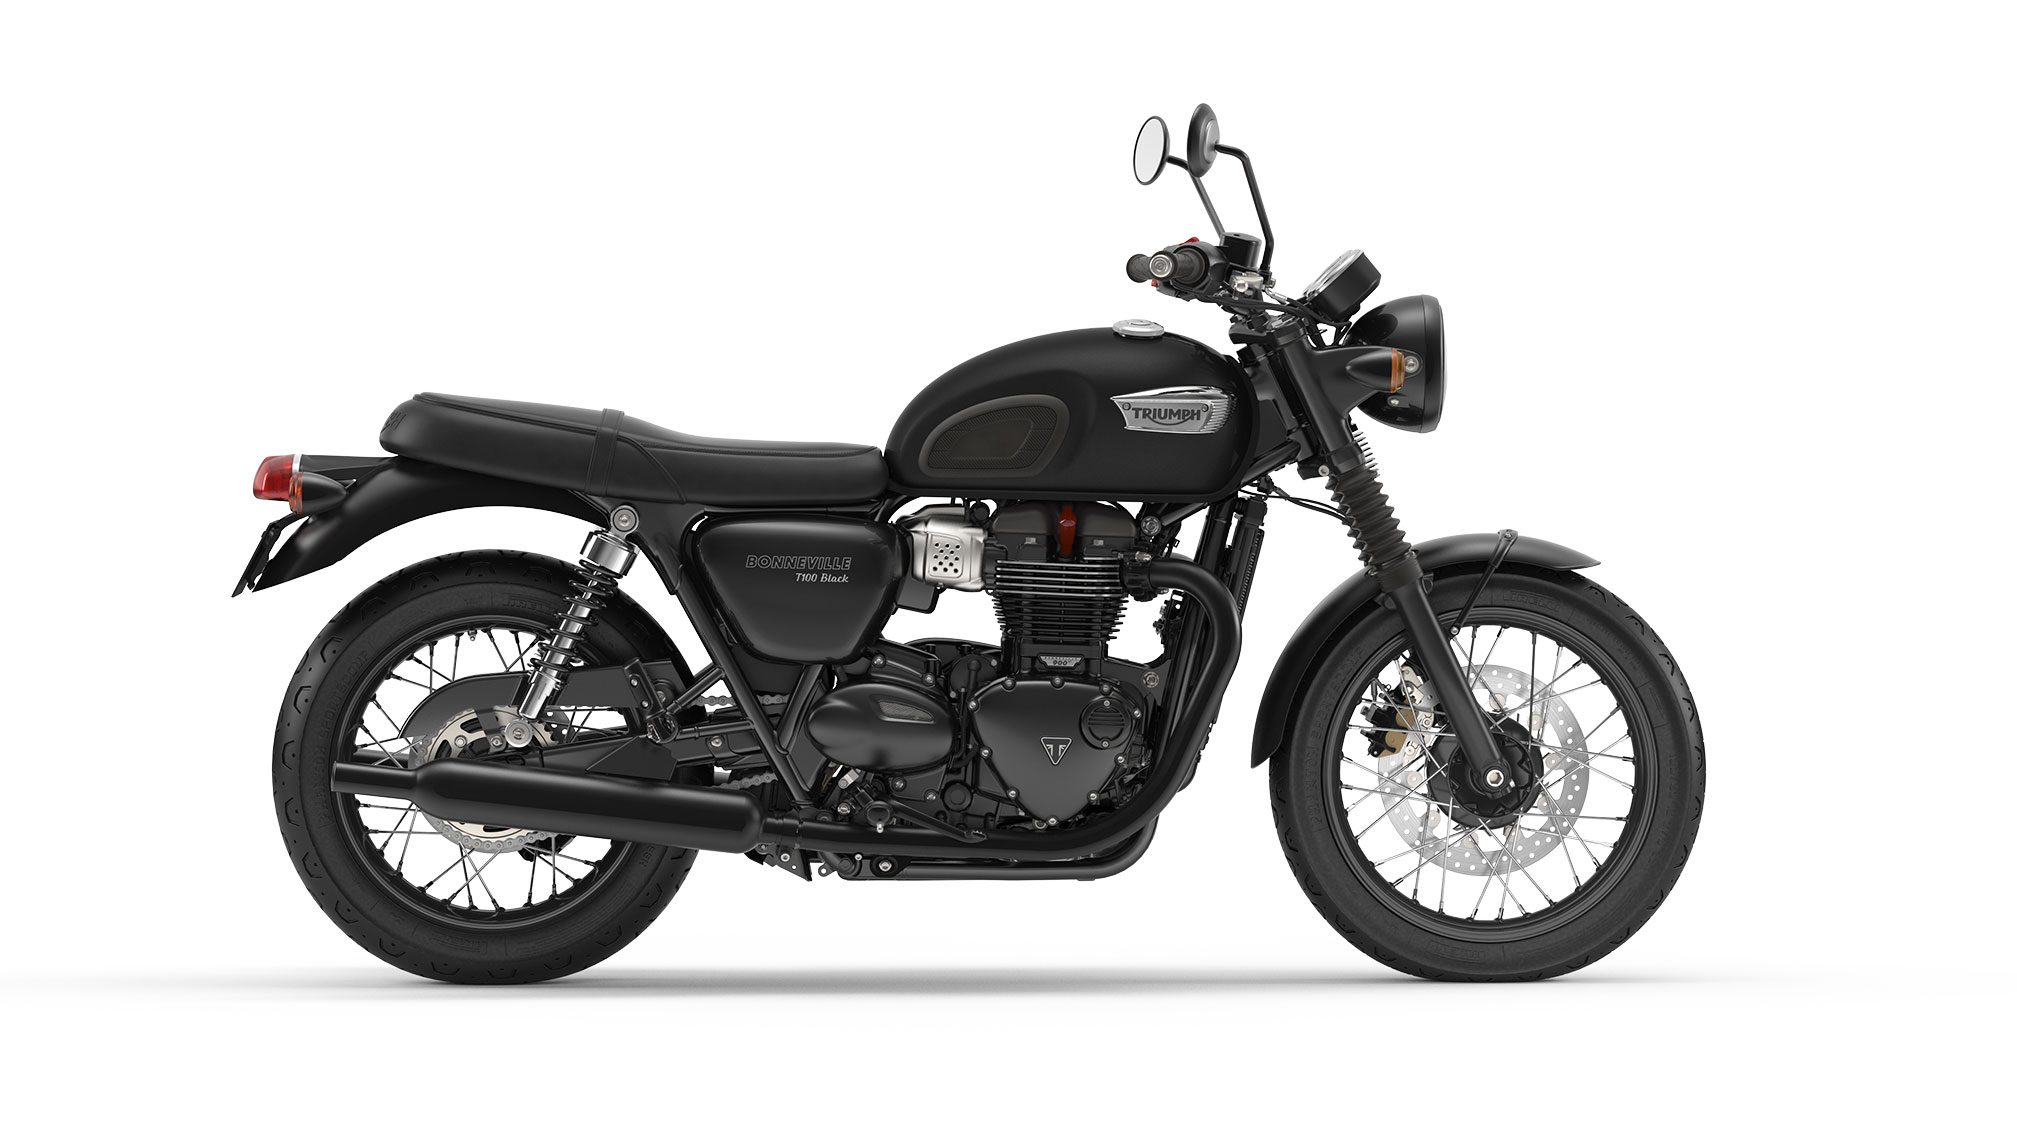 2017 triumph bonneville t100 black review. Black Bedroom Furniture Sets. Home Design Ideas